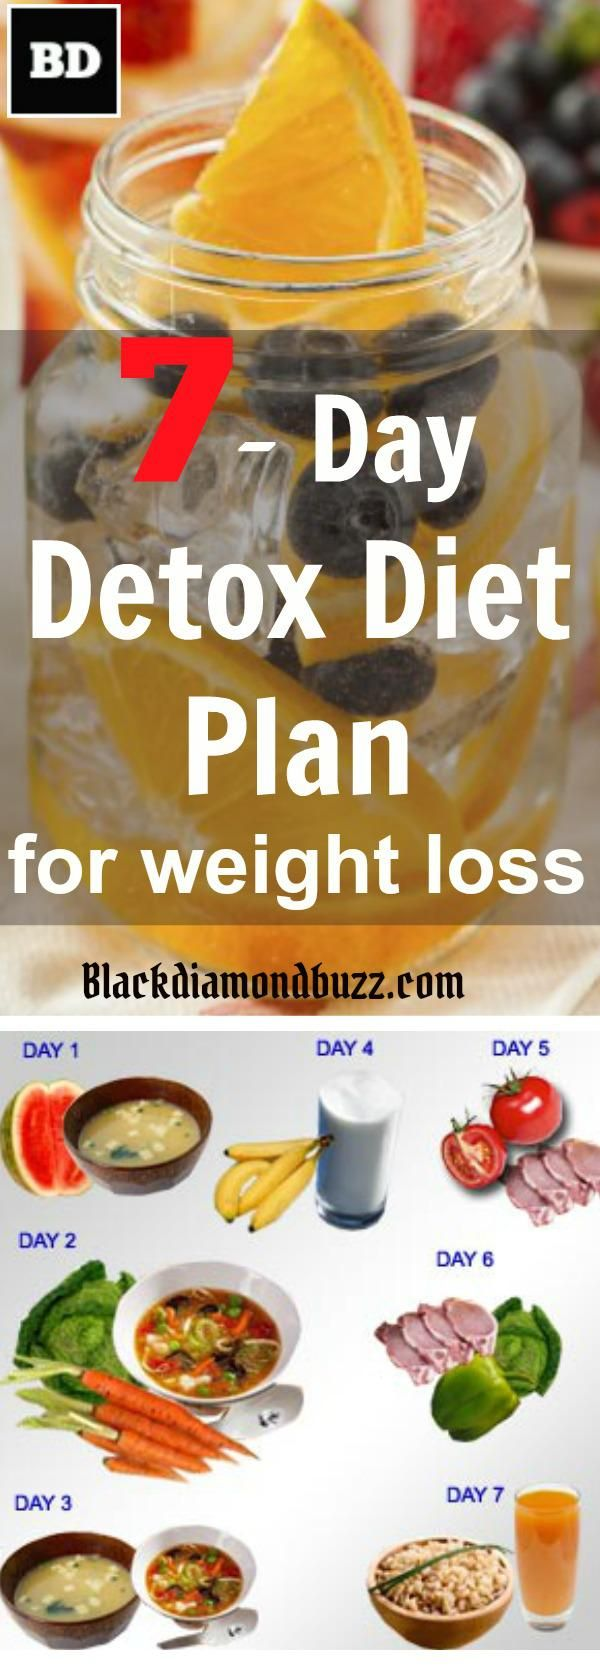 How to be skinny diet plan image 1